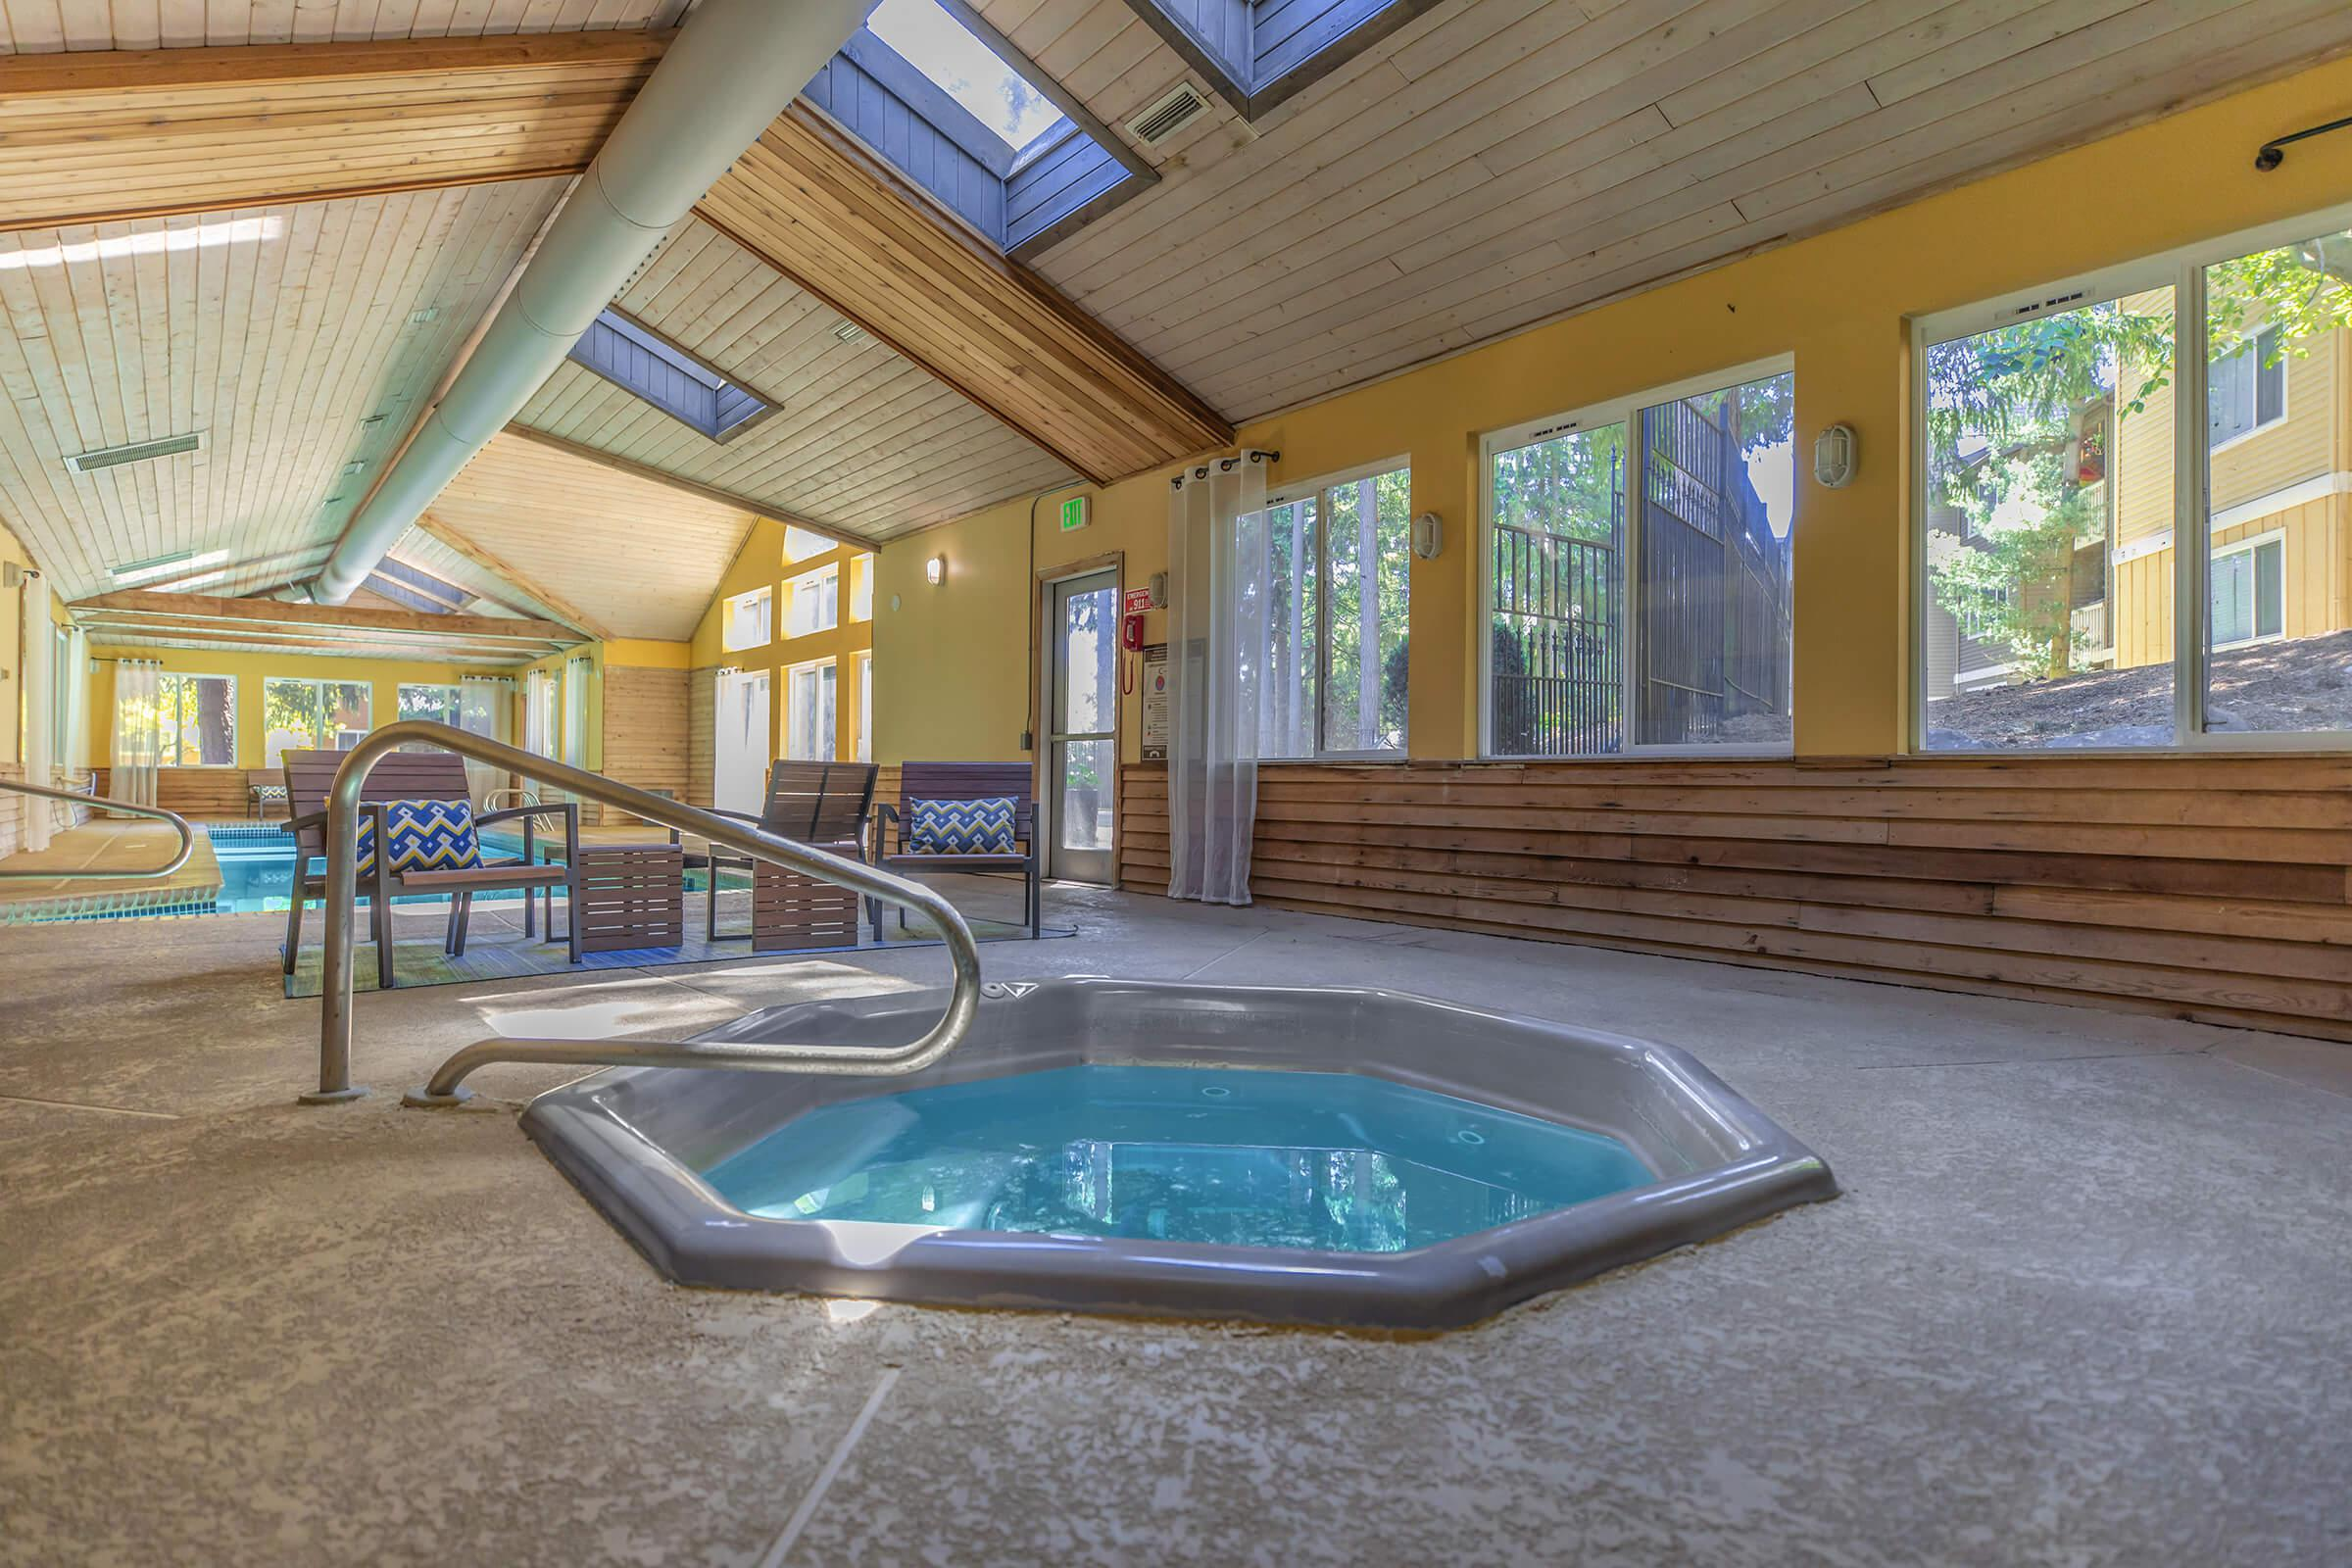 a room with a pool in front of a window